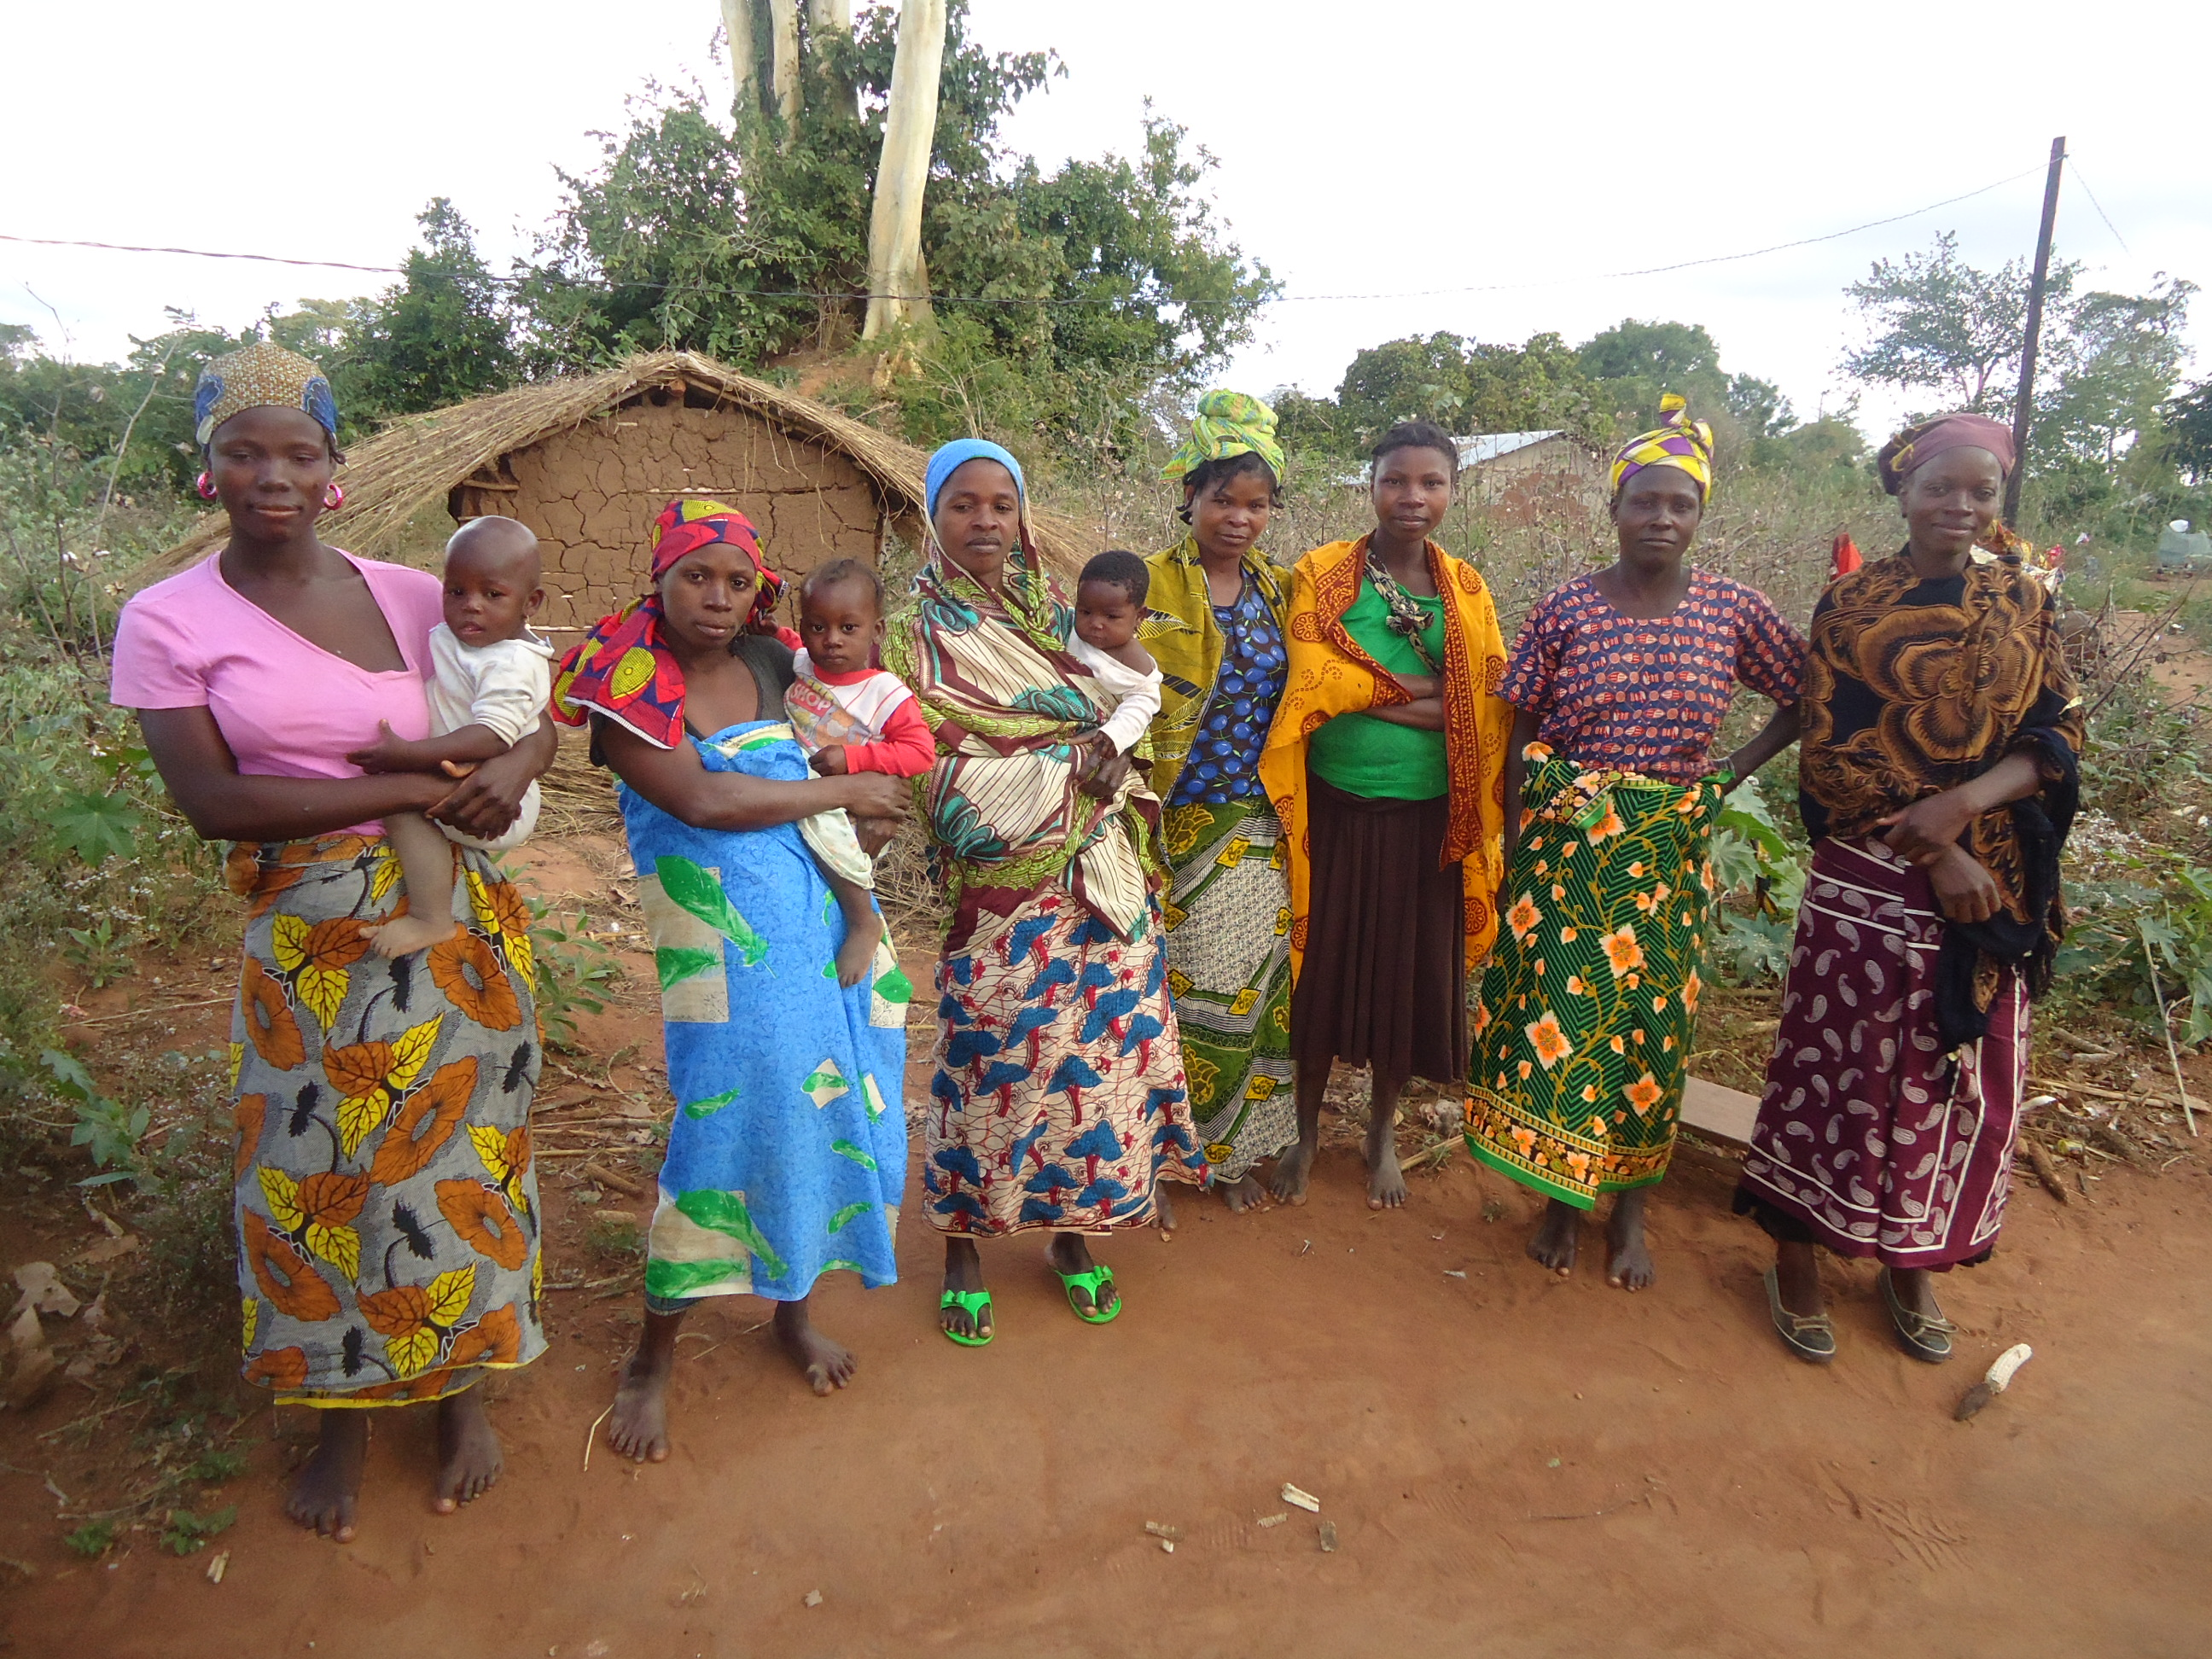 Afrika - Page 15 Women_Farmers_in_Itoculu,_Monapo_District,_Mozambique